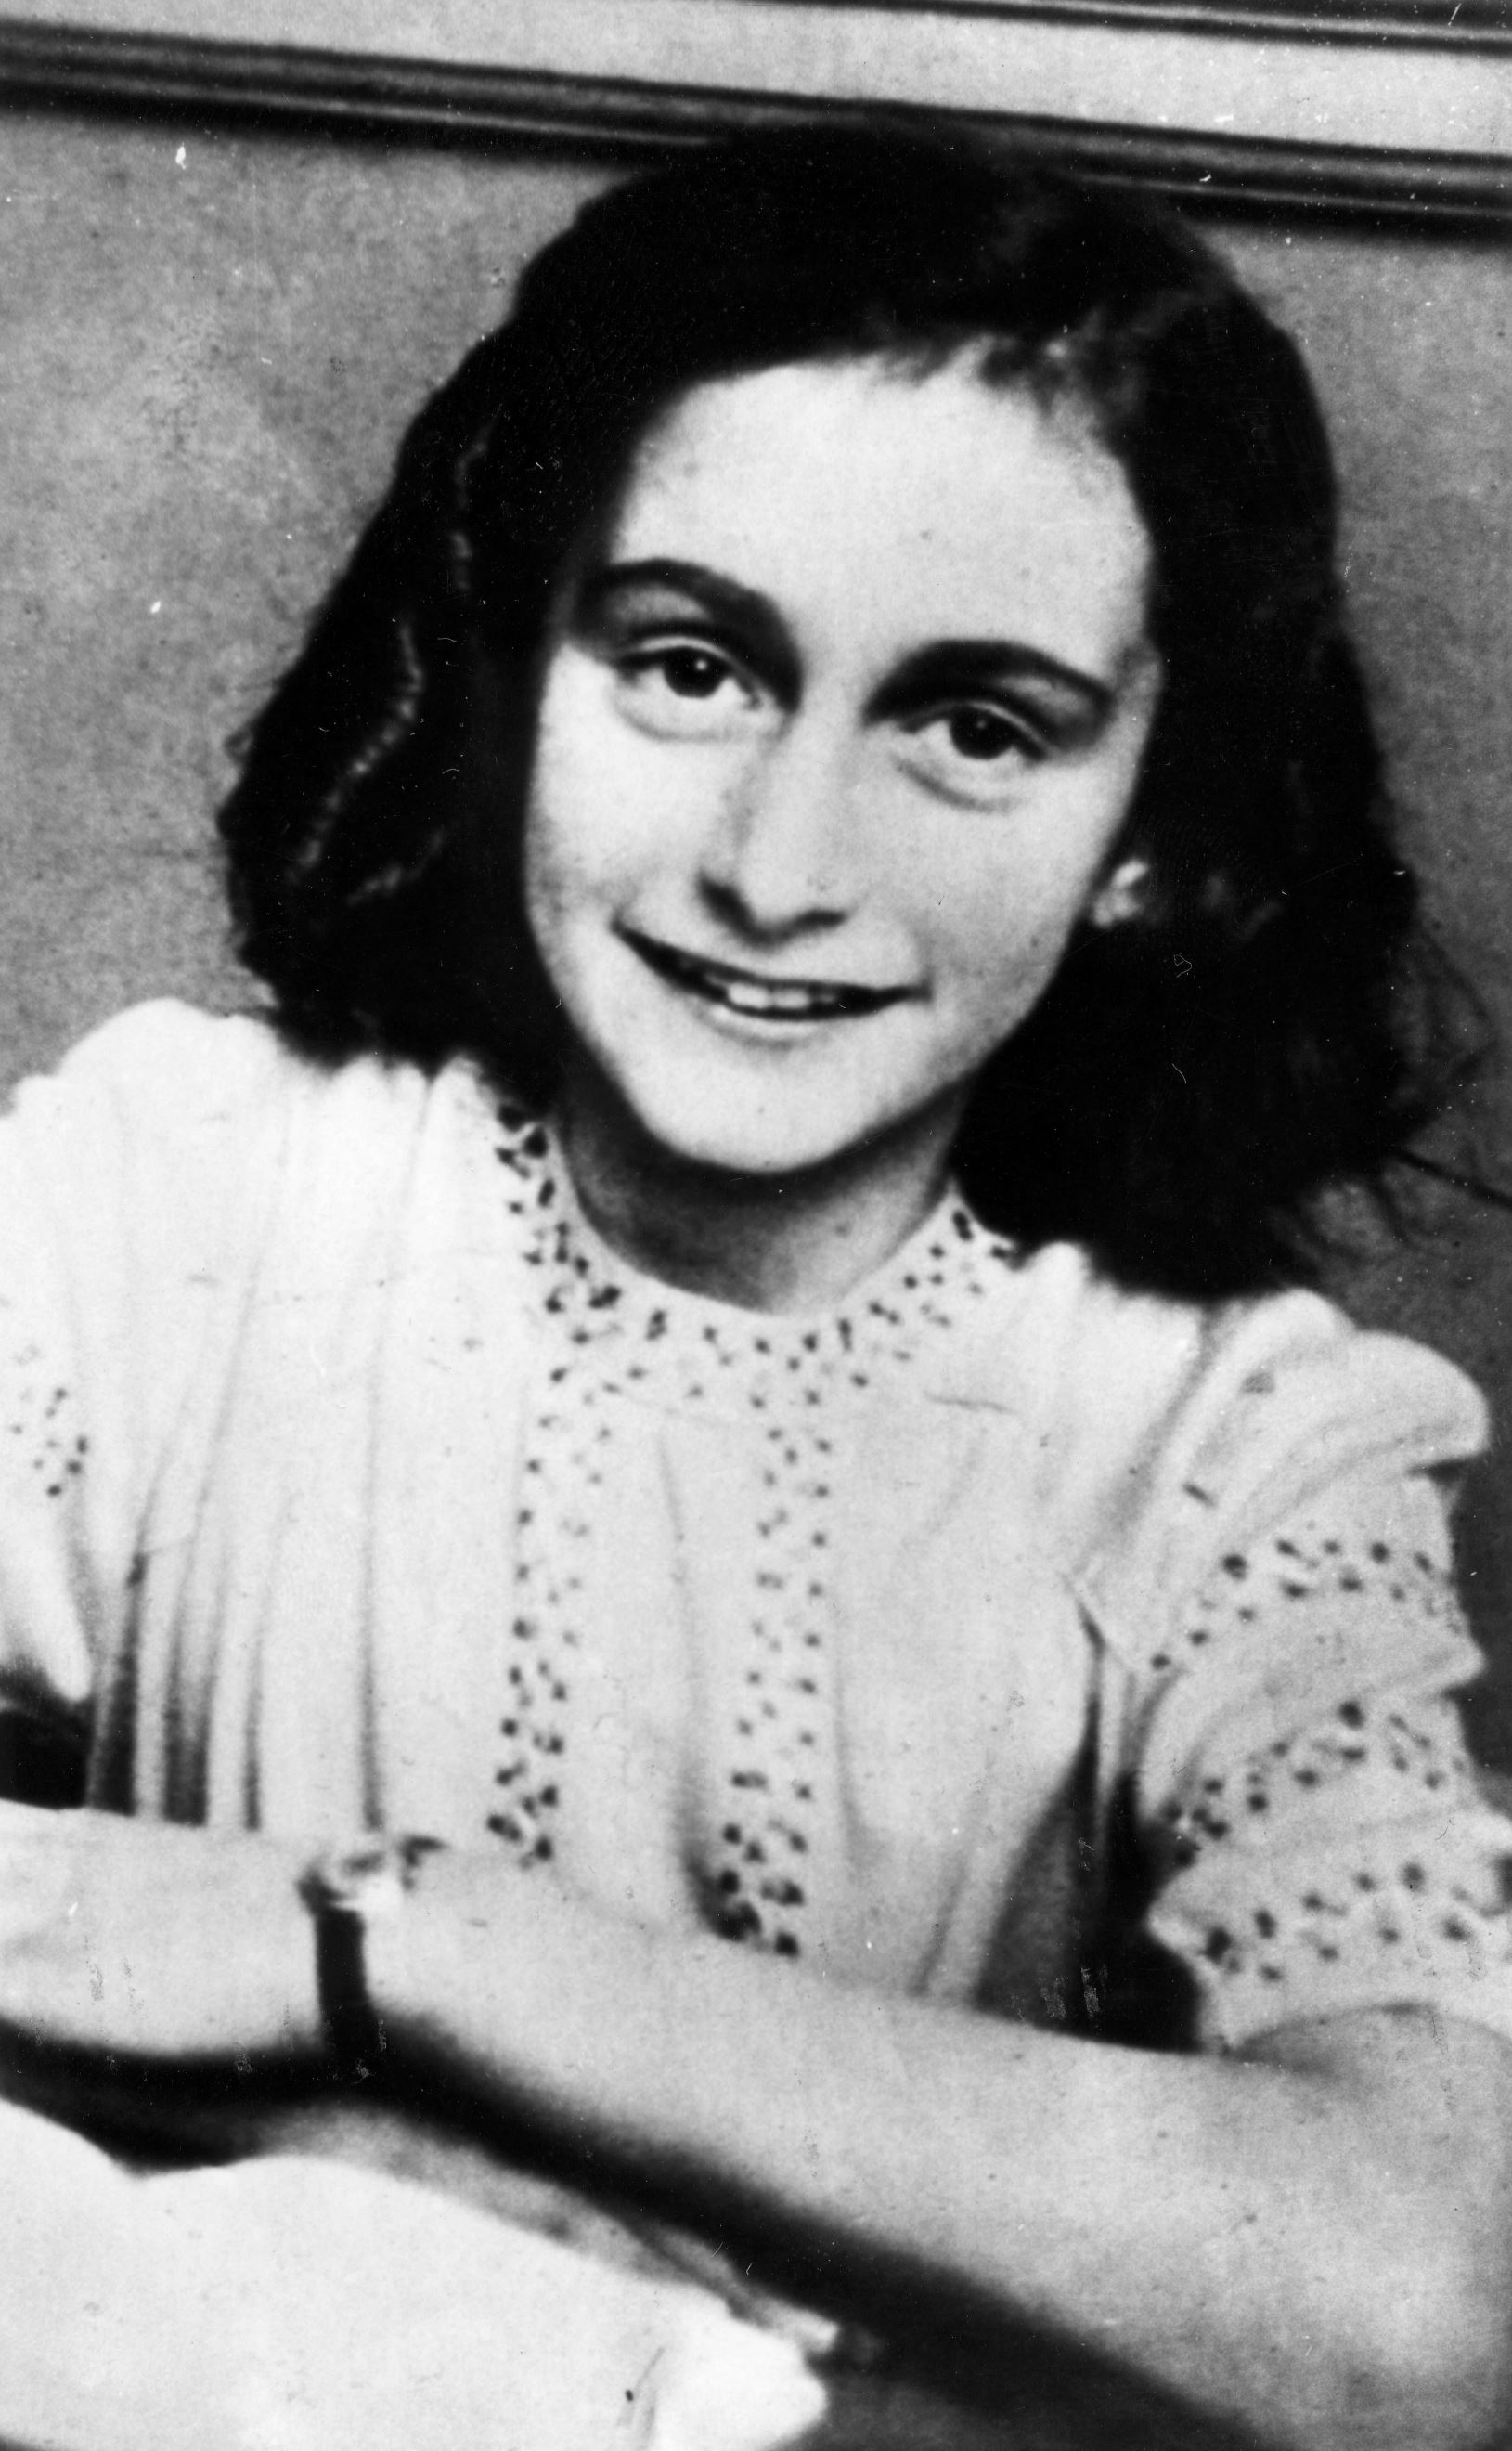 Her diary became the haunting first person account of the horrors of Holocaust. The famous diarist died at one of the Nazi camps at young age of 15.